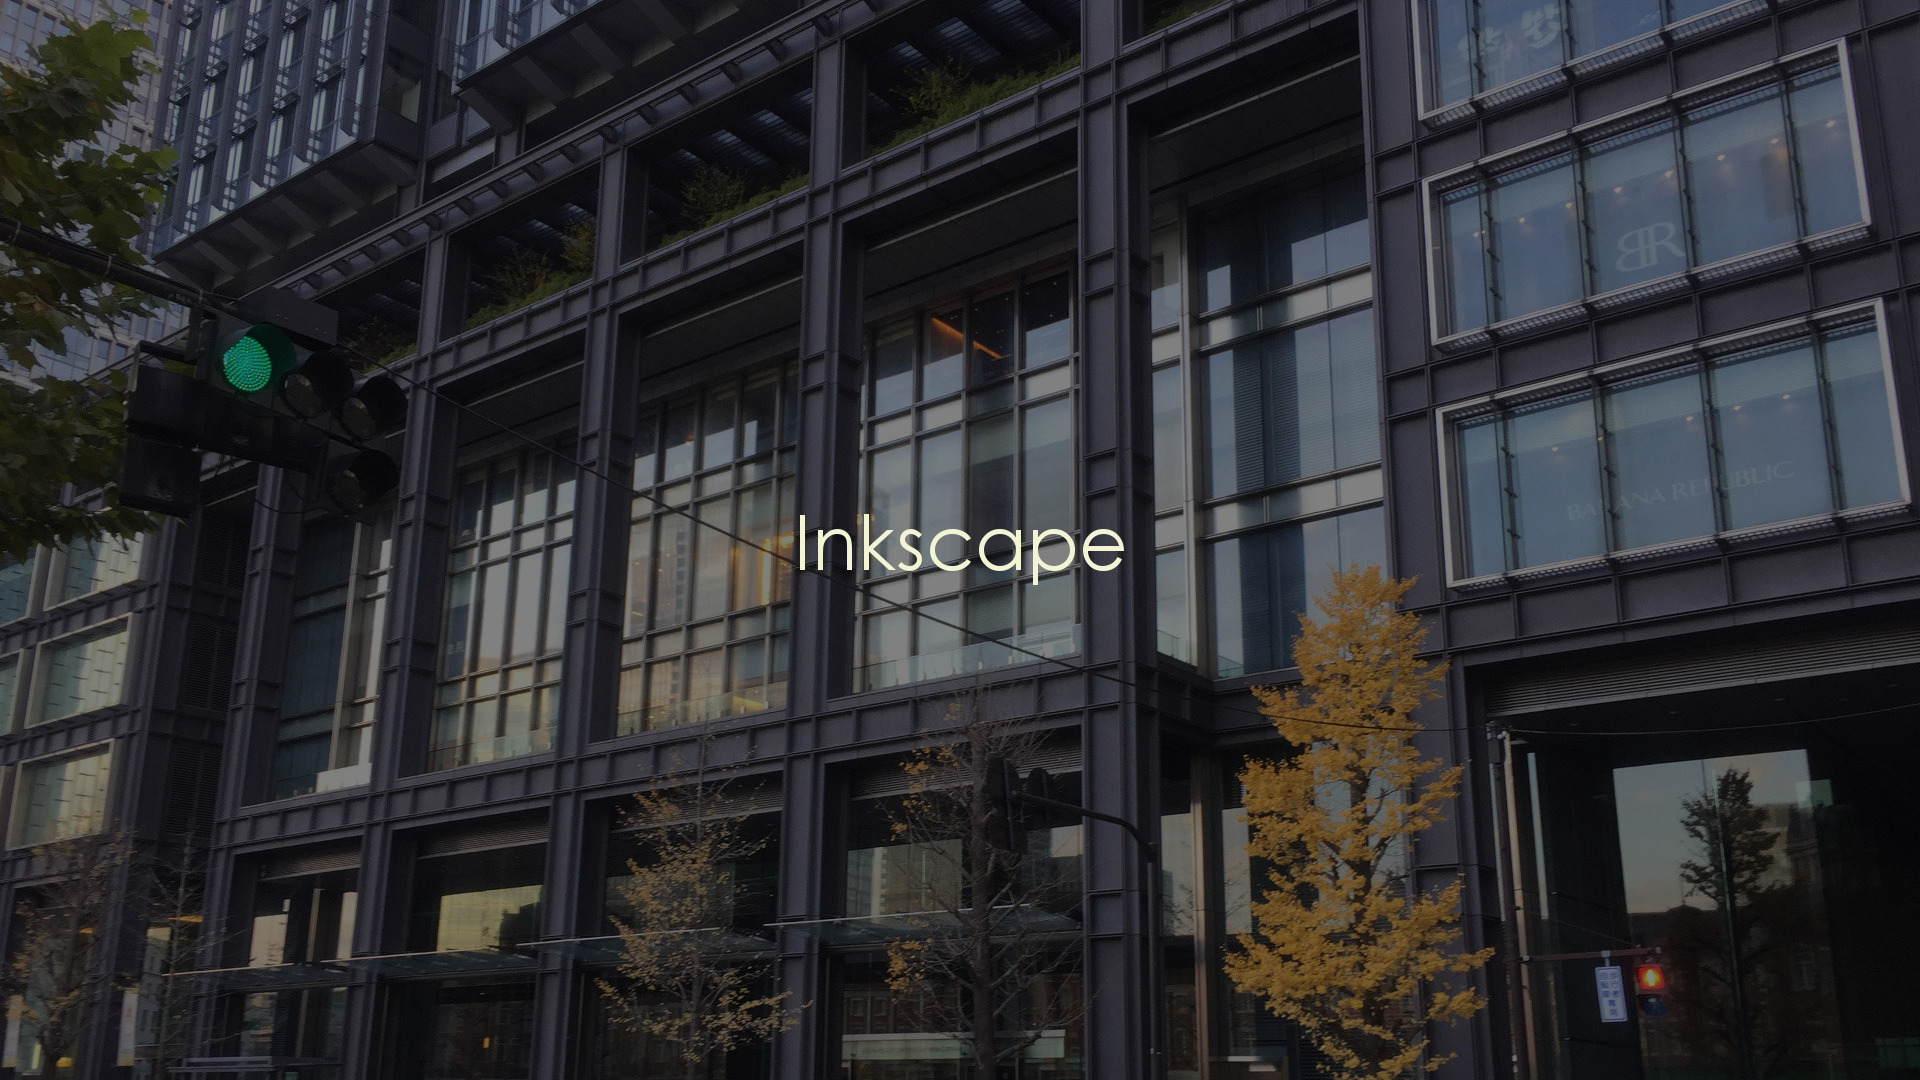 【Inkscape】MacにInkscapeをインストール